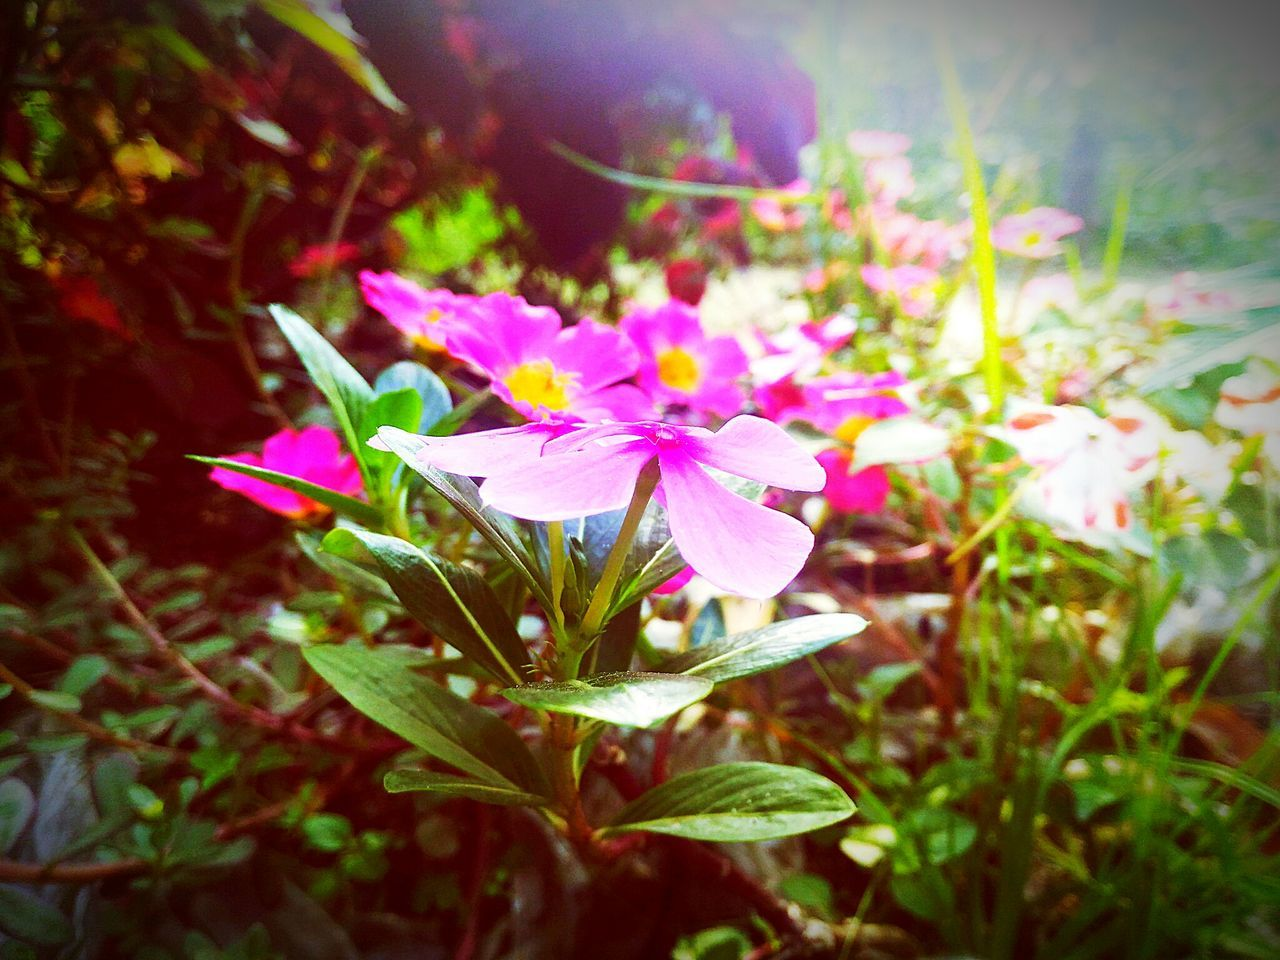 flower, growth, petal, nature, beauty in nature, fragility, plant, no people, freshness, flower head, blooming, leaf, pink color, outdoors, day, close-up, periwinkle